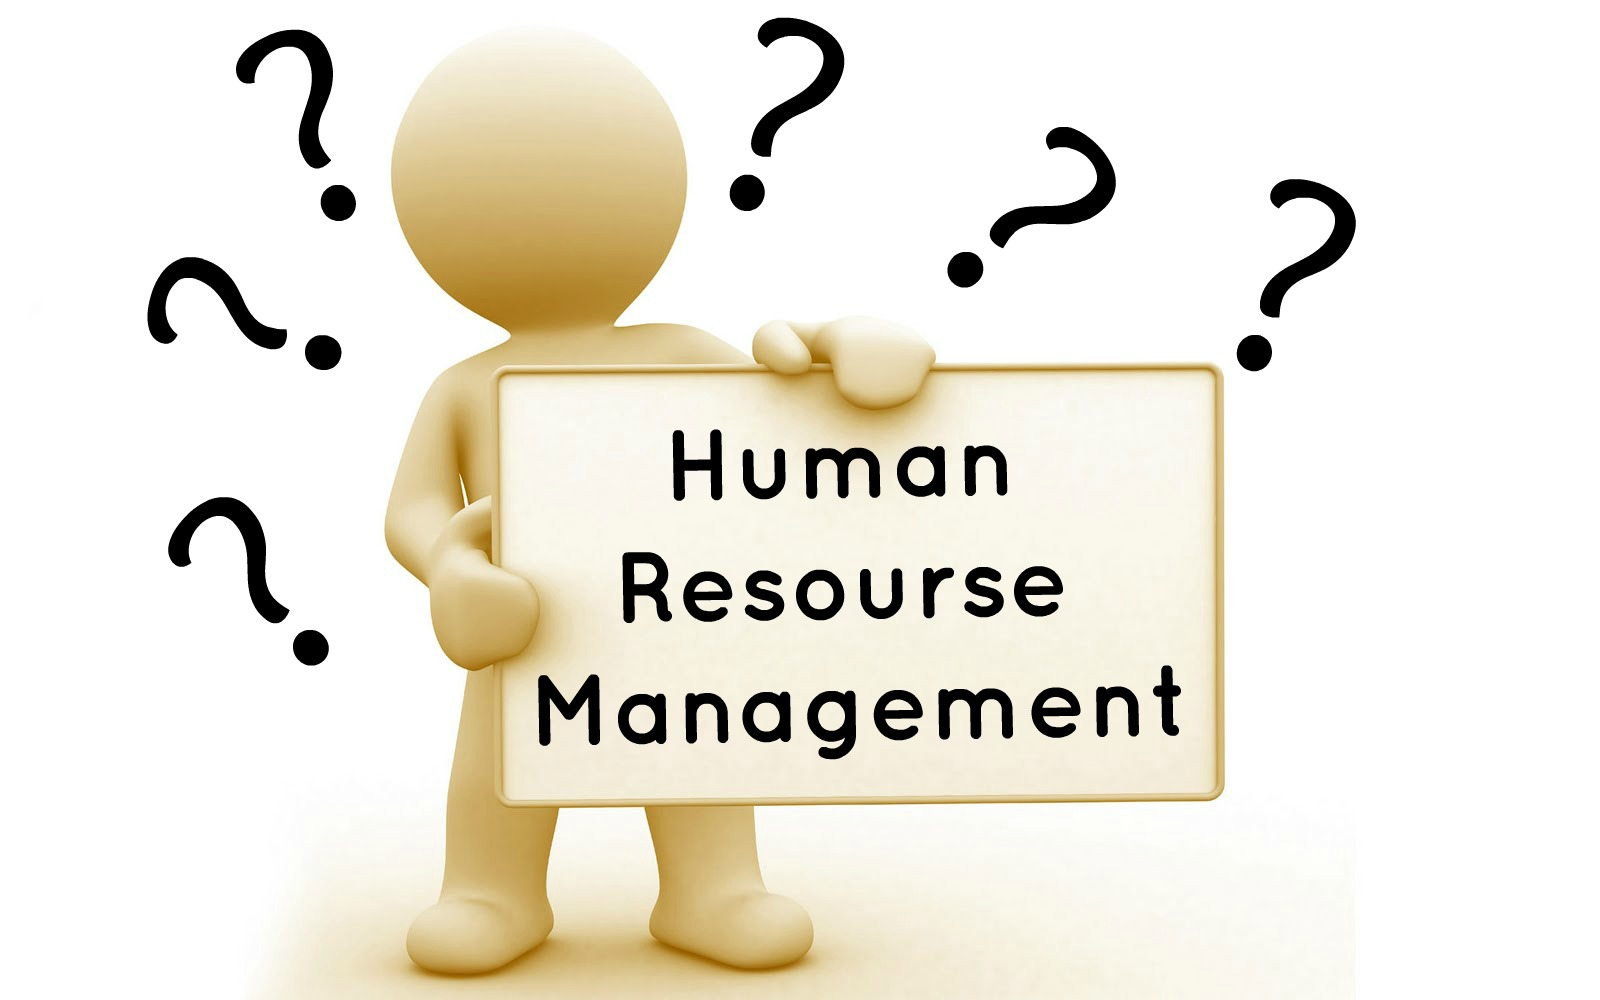 http://study.aisectonline.com/images/Human Resourse Management.jpg